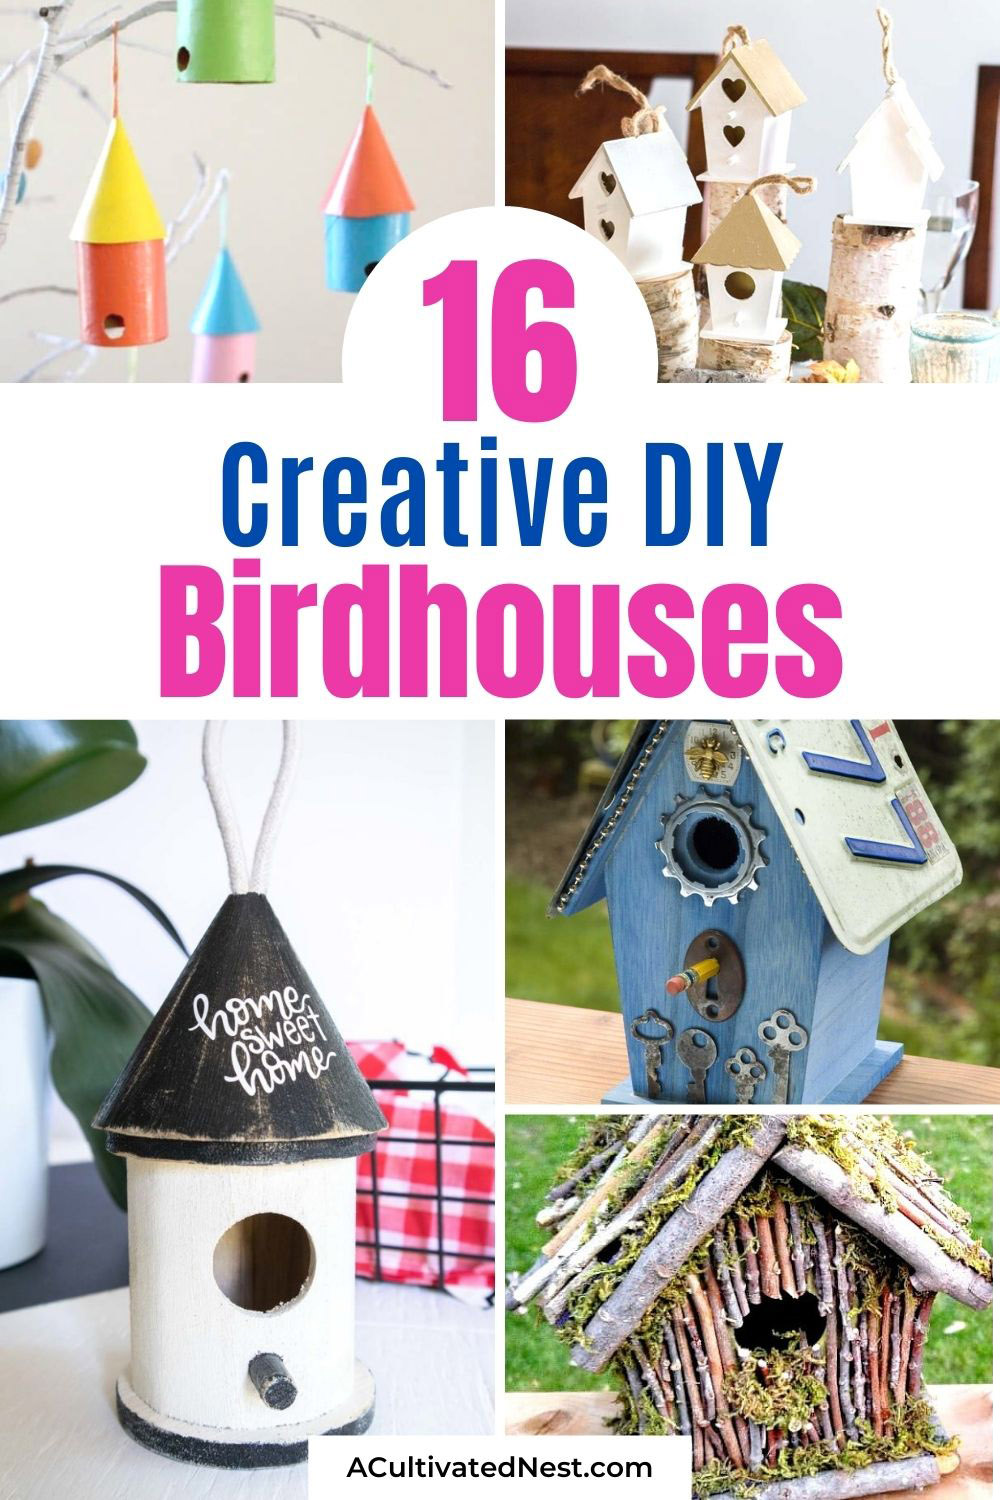 16 DIY Birdhouse Projects- If you want a fun décor piece for inside your home, or want to attract more birds outside, you'll love these DIY birdhouse projects! This great collection of homemade birdhouses includes both kids crafts and more sophisticated DIY projects! | #birdhouse #diyProjects #craft #kidsCrafts #ACultivatedNest